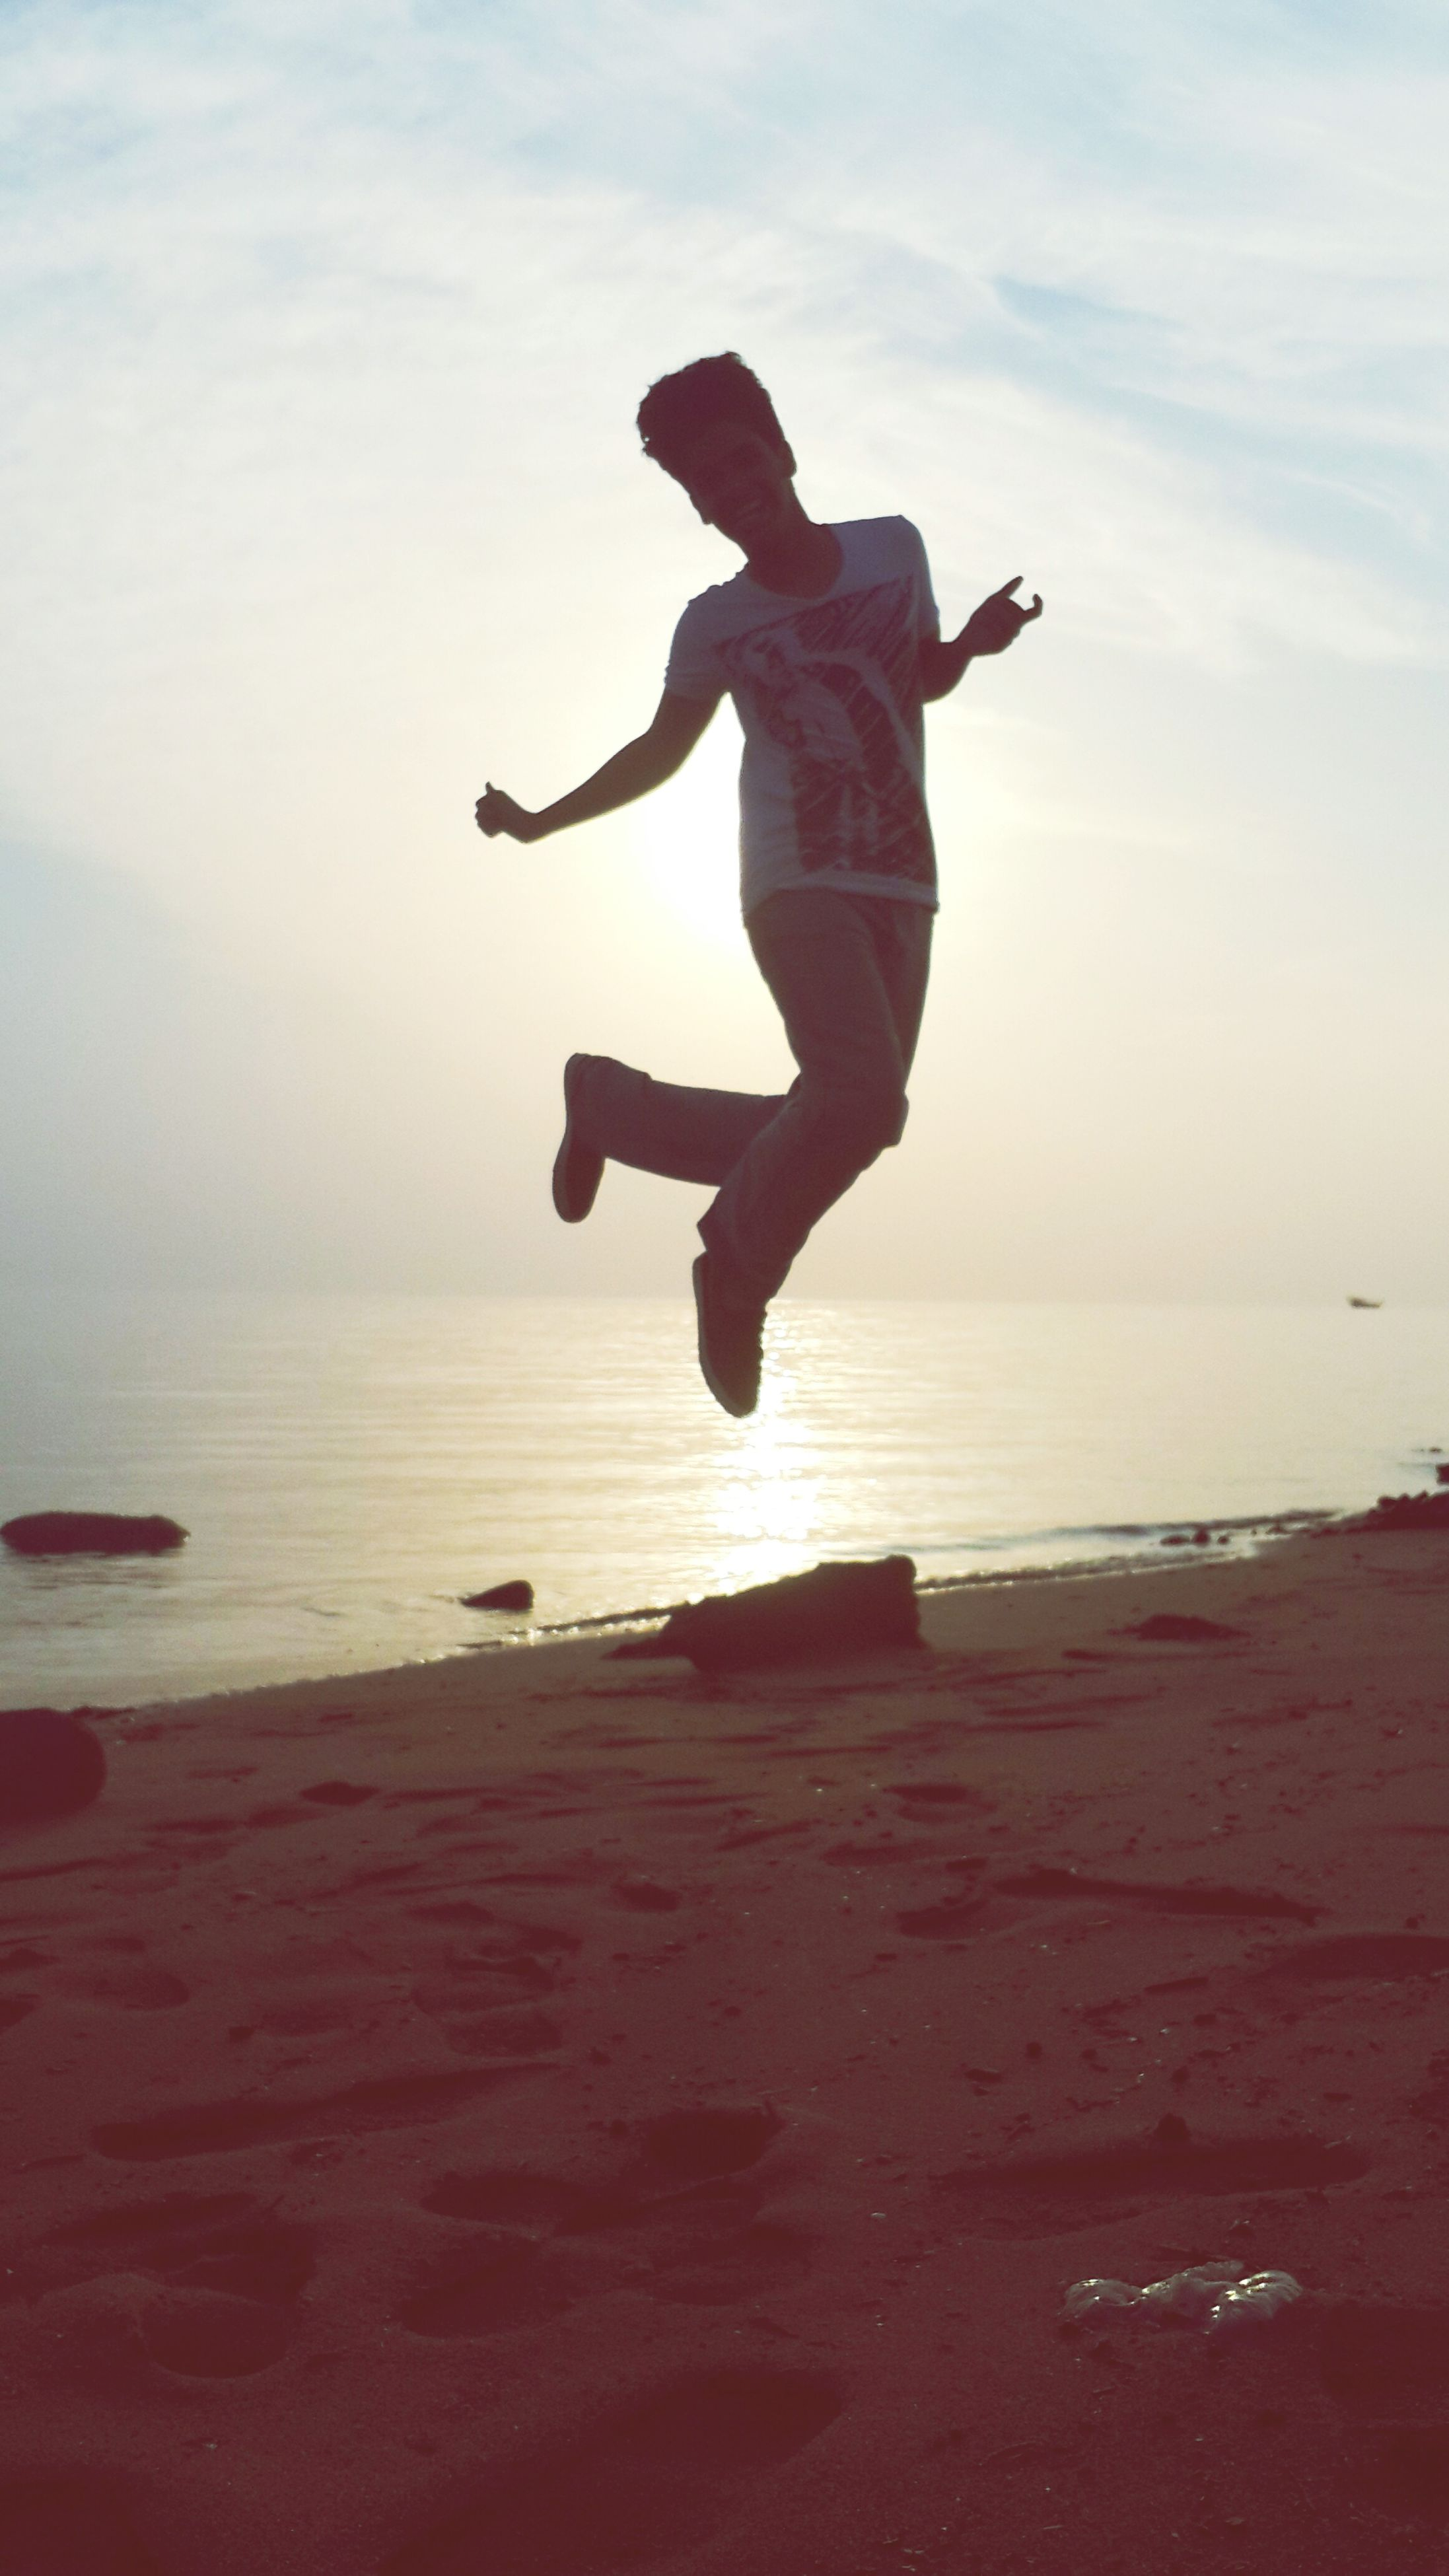 full length, sea, beach, leisure activity, mid-air, jumping, lifestyles, sky, enjoyment, shore, fun, water, sand, vacations, freedom, arms raised, arms outstretched, horizon over water